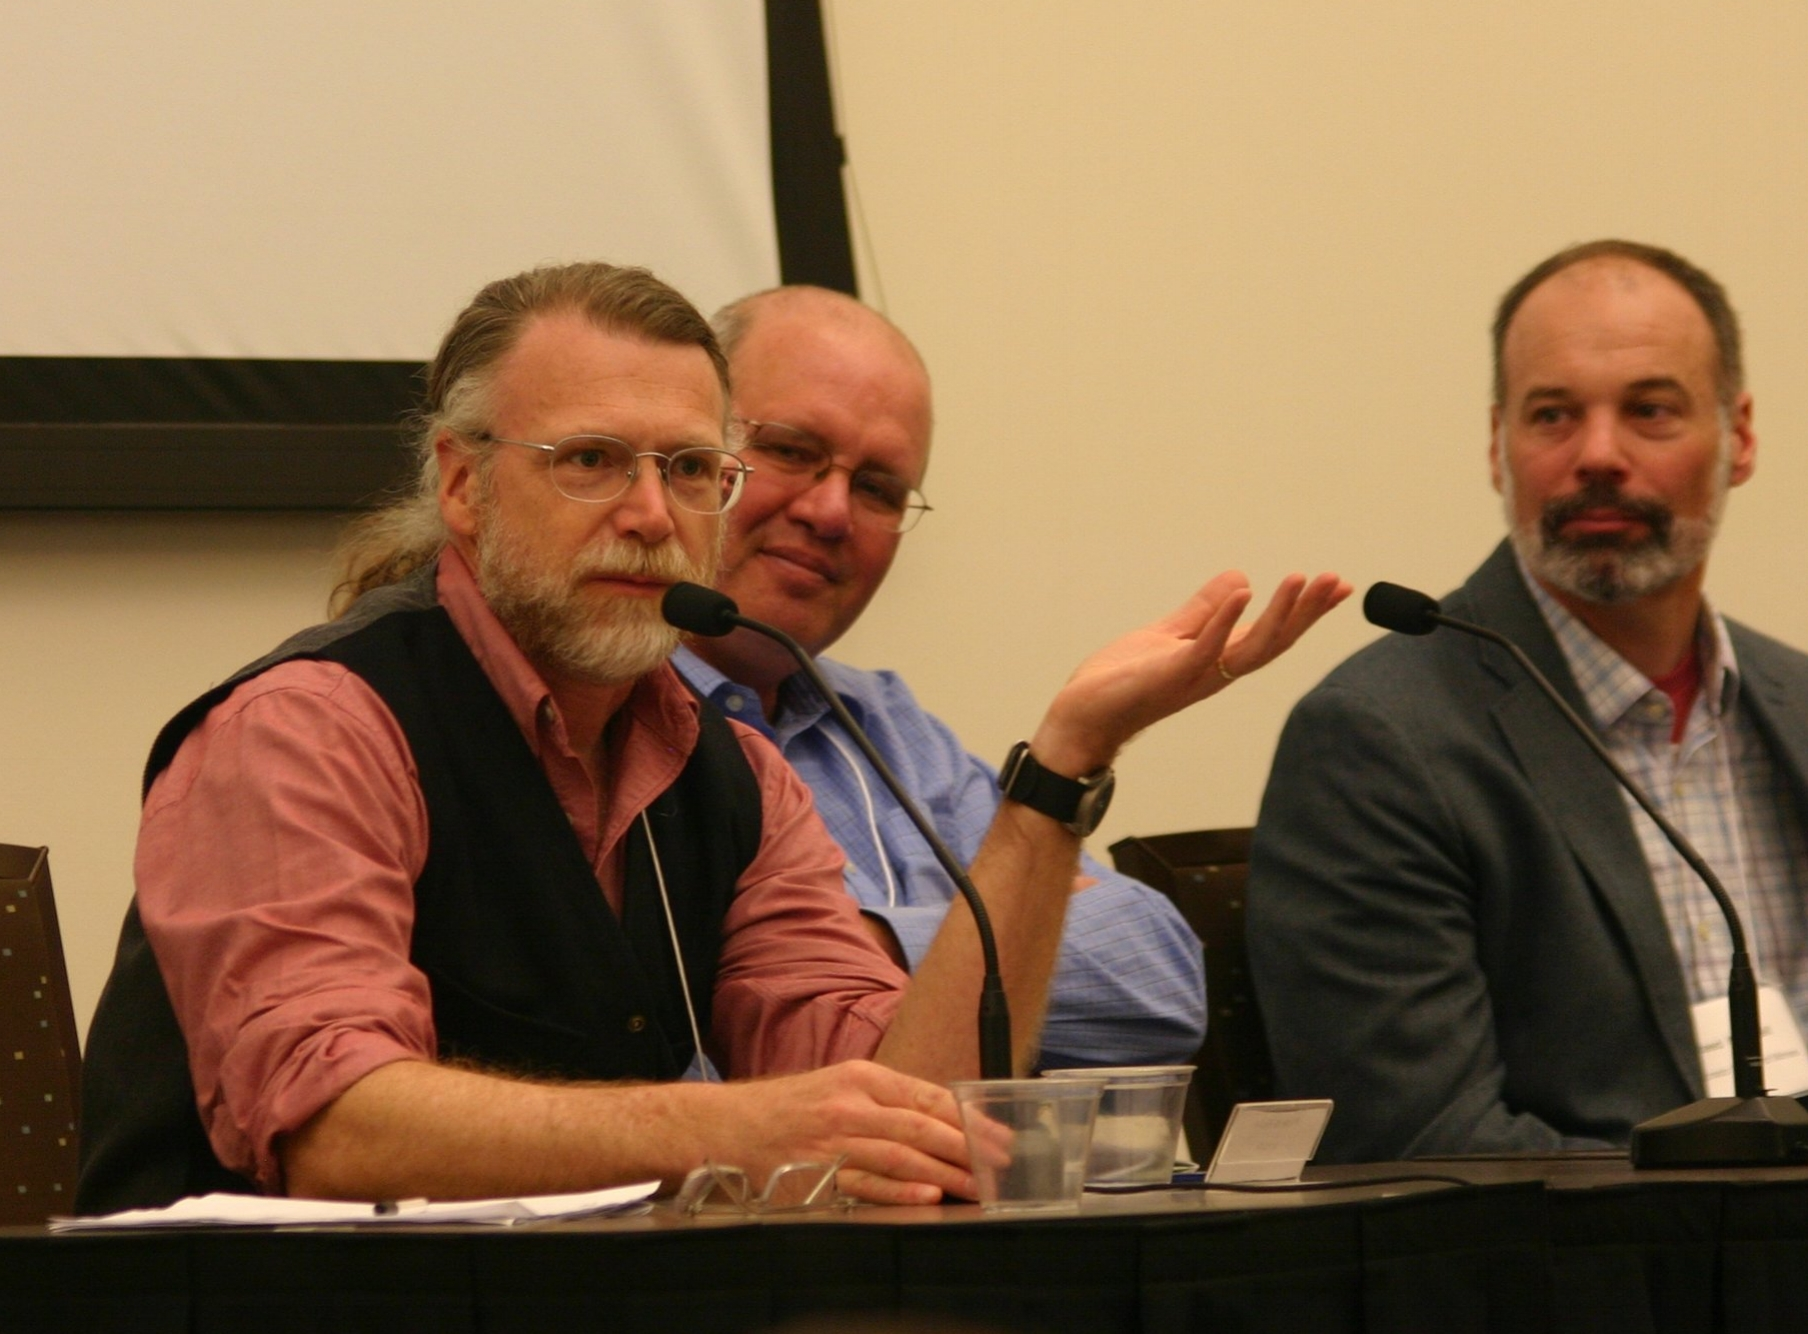 CCWAS Conference Panel Discussion with Mark Fiege, Ken Tate, and Reed Maxwell. Photo by Carole Hom.